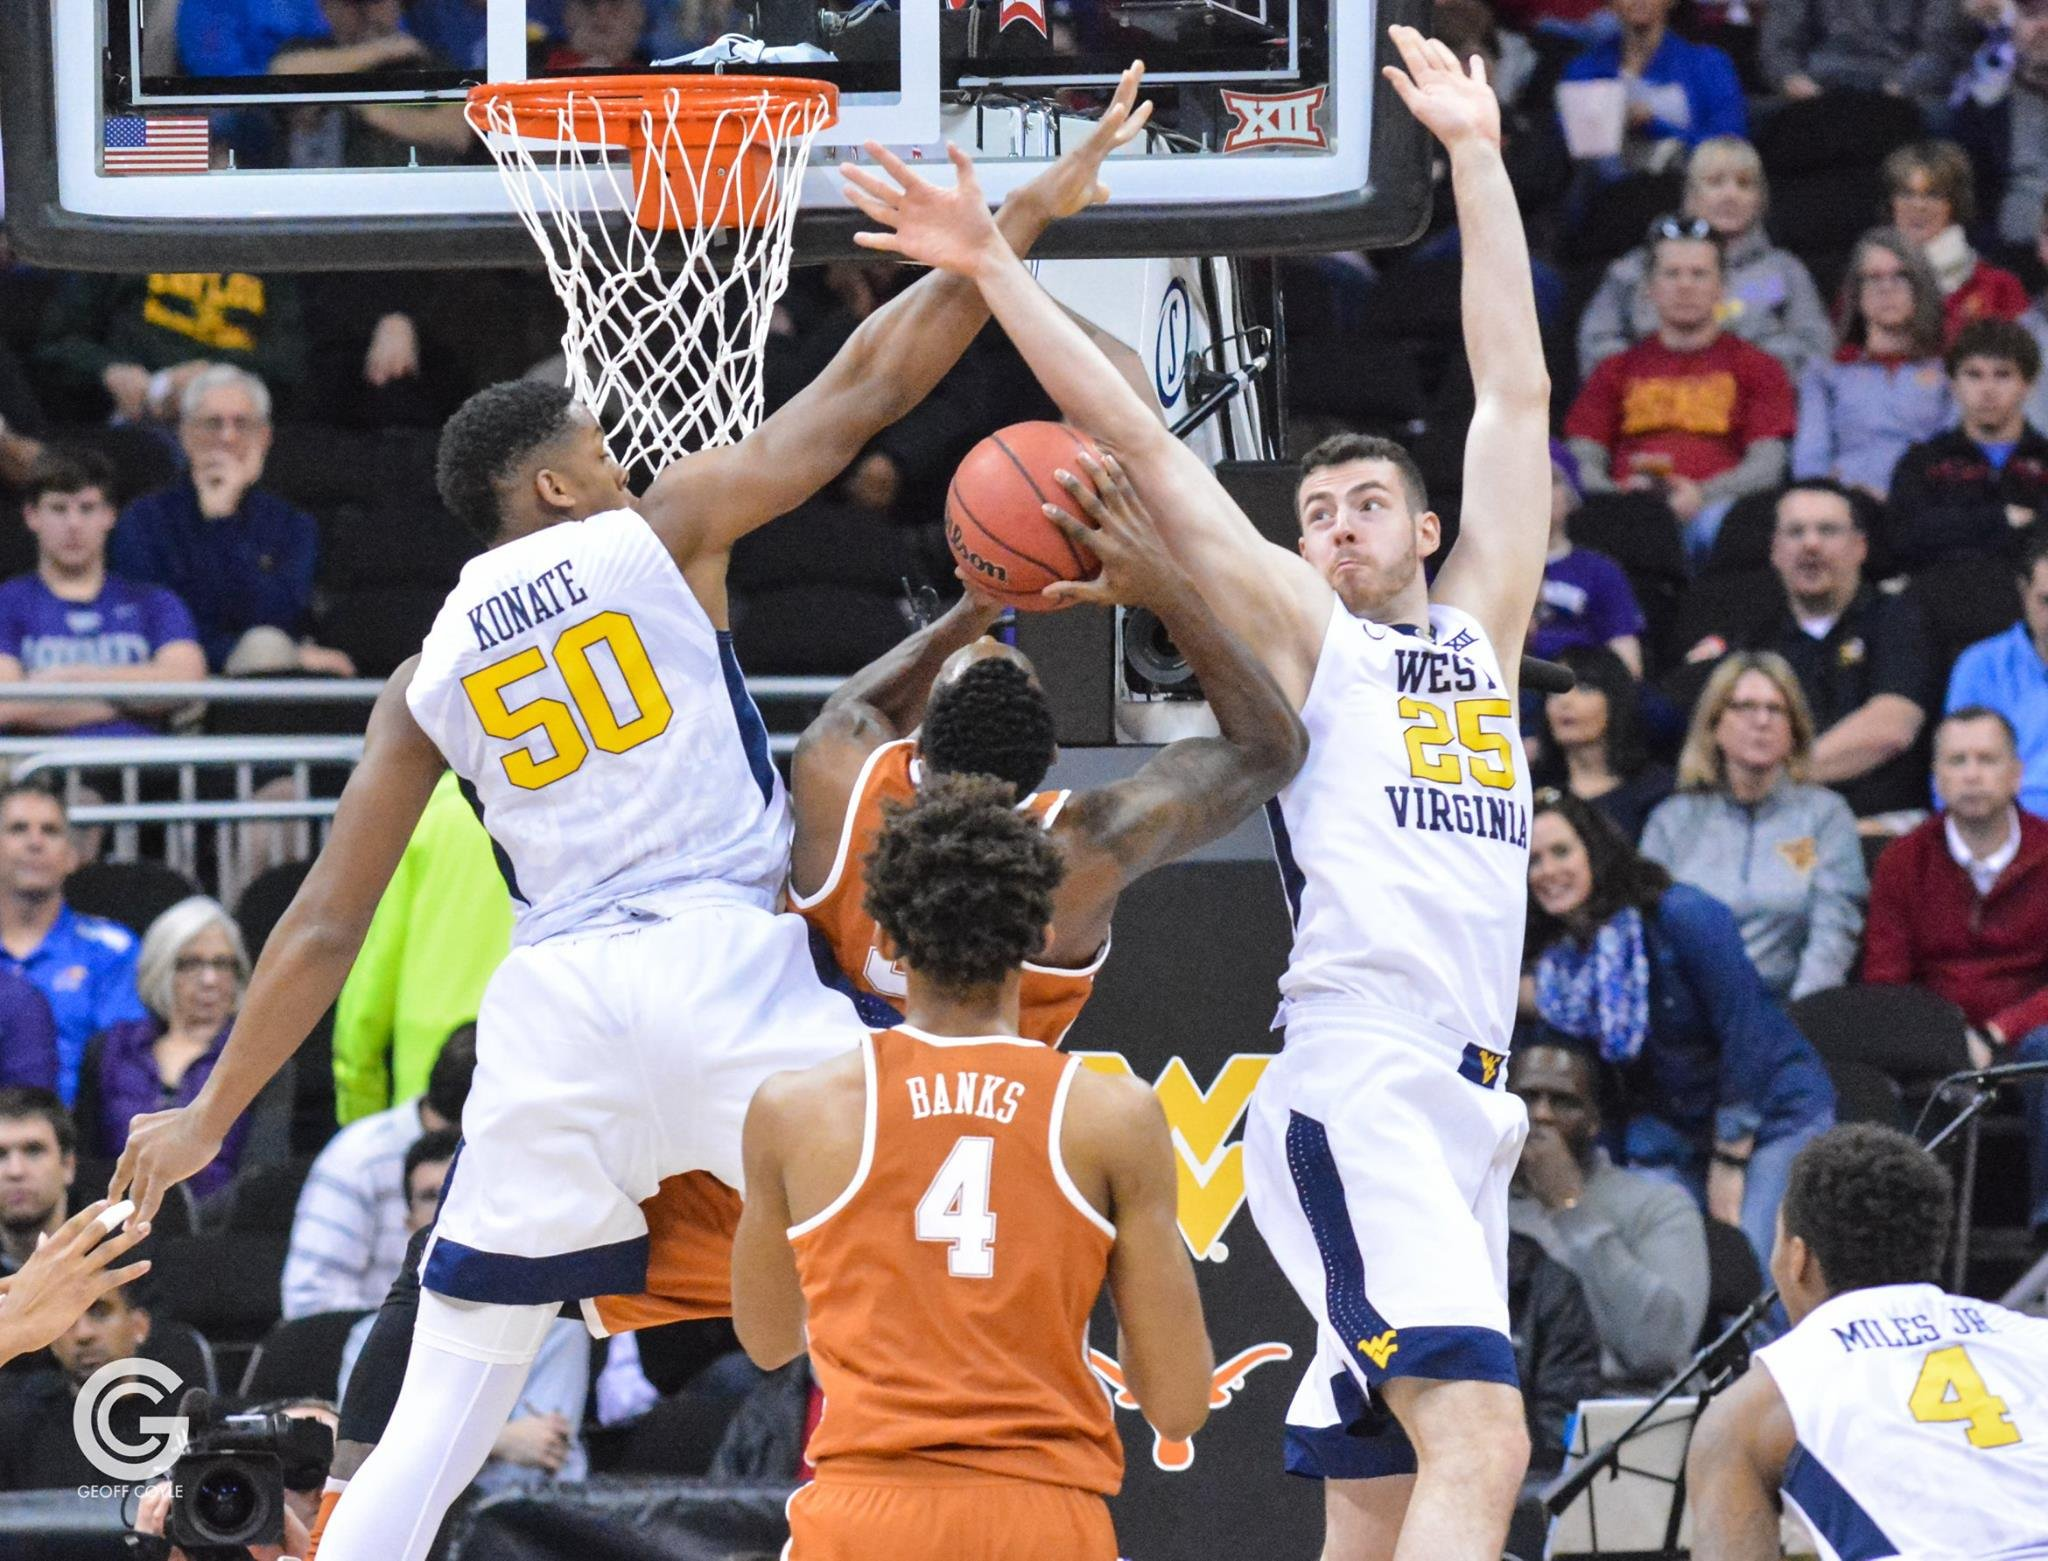 Freshman Sagaba Konate and Maciej Bender block a shot in the quarterfinal round of the Phillips 66 Big 12 Men's Basketball Championship.